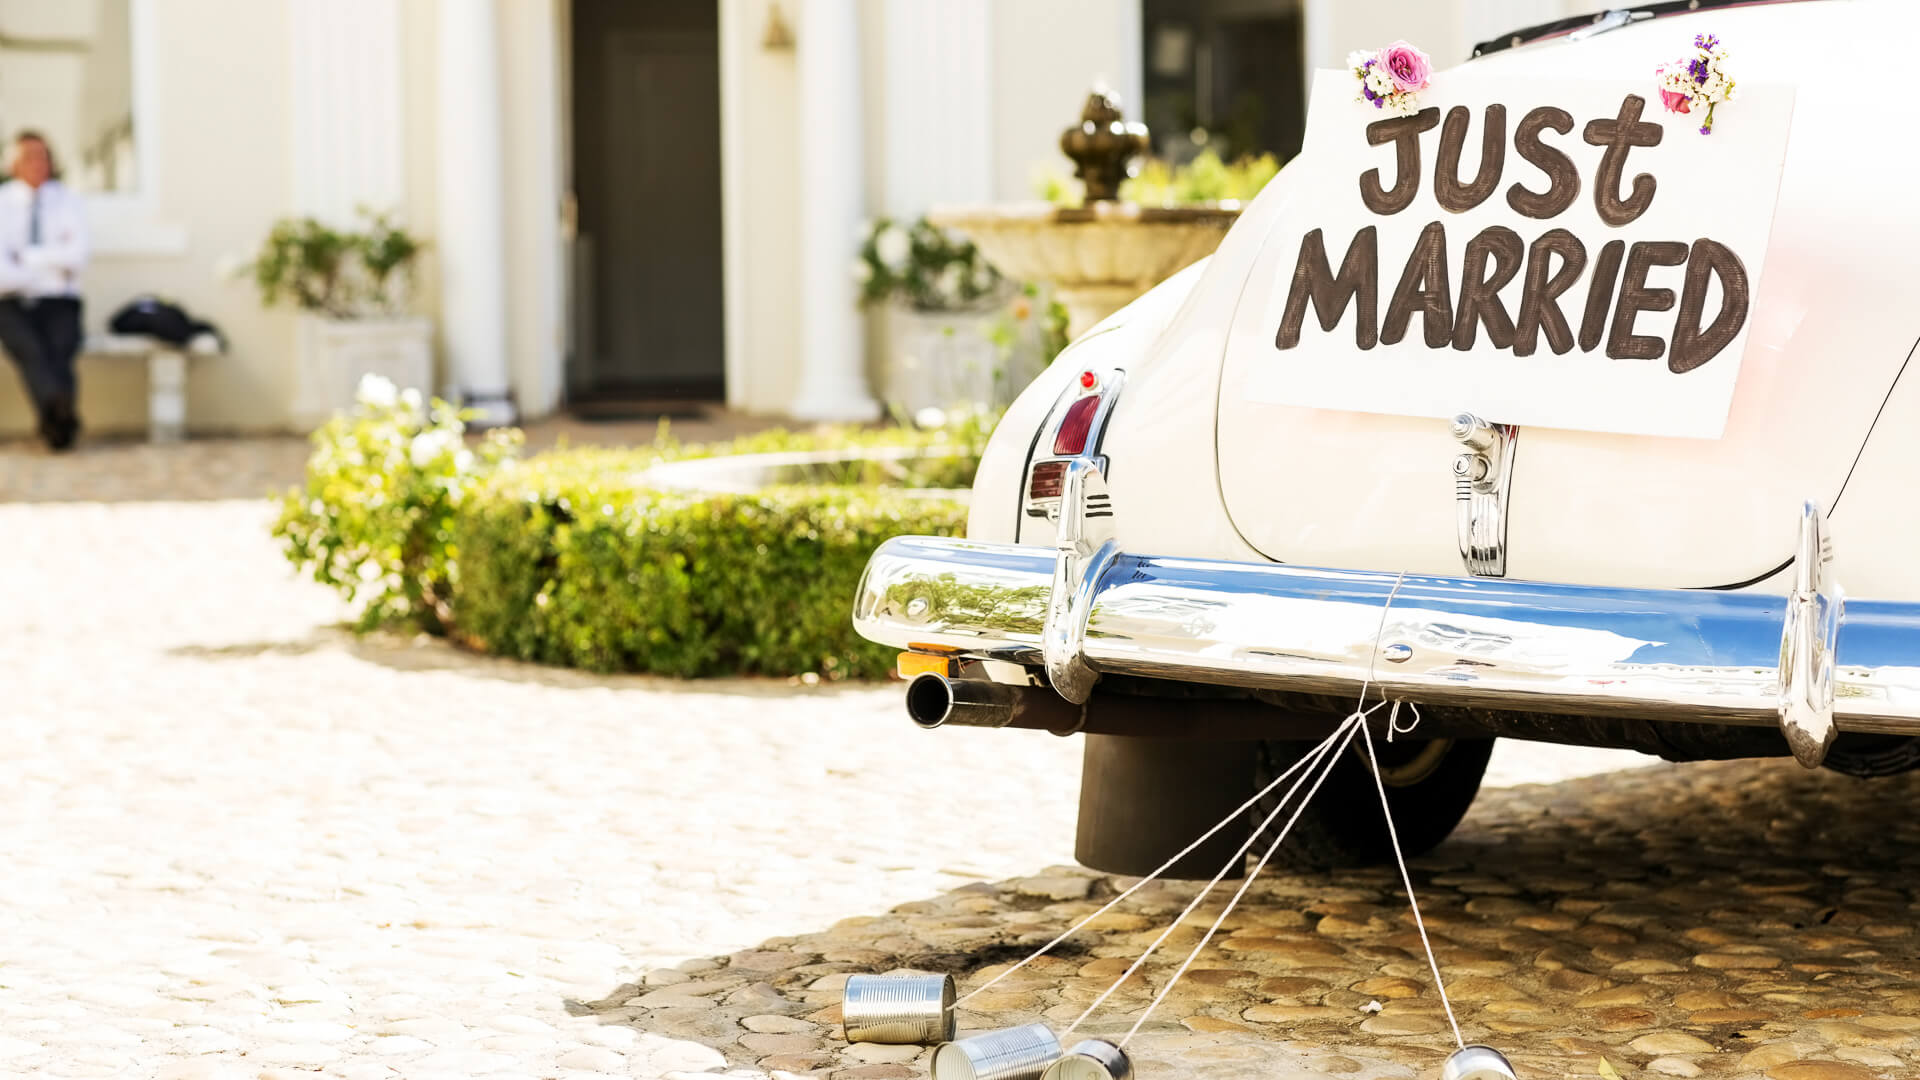 Just married sign and cans attached to convertible car.